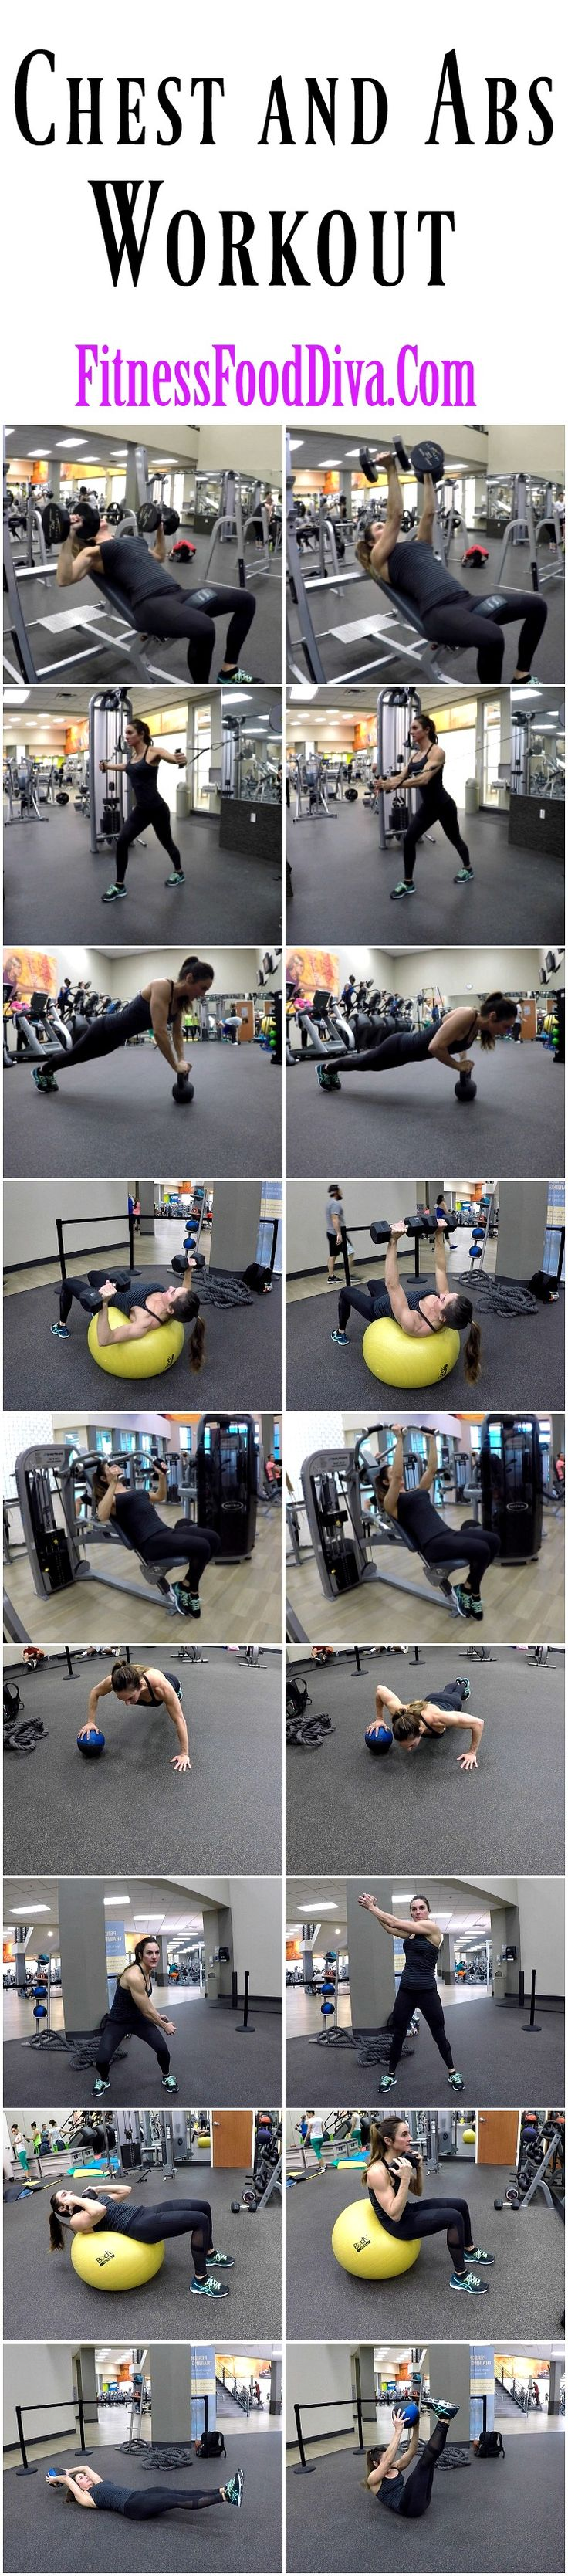 Sculpt your Chest and Abs with this great workout!